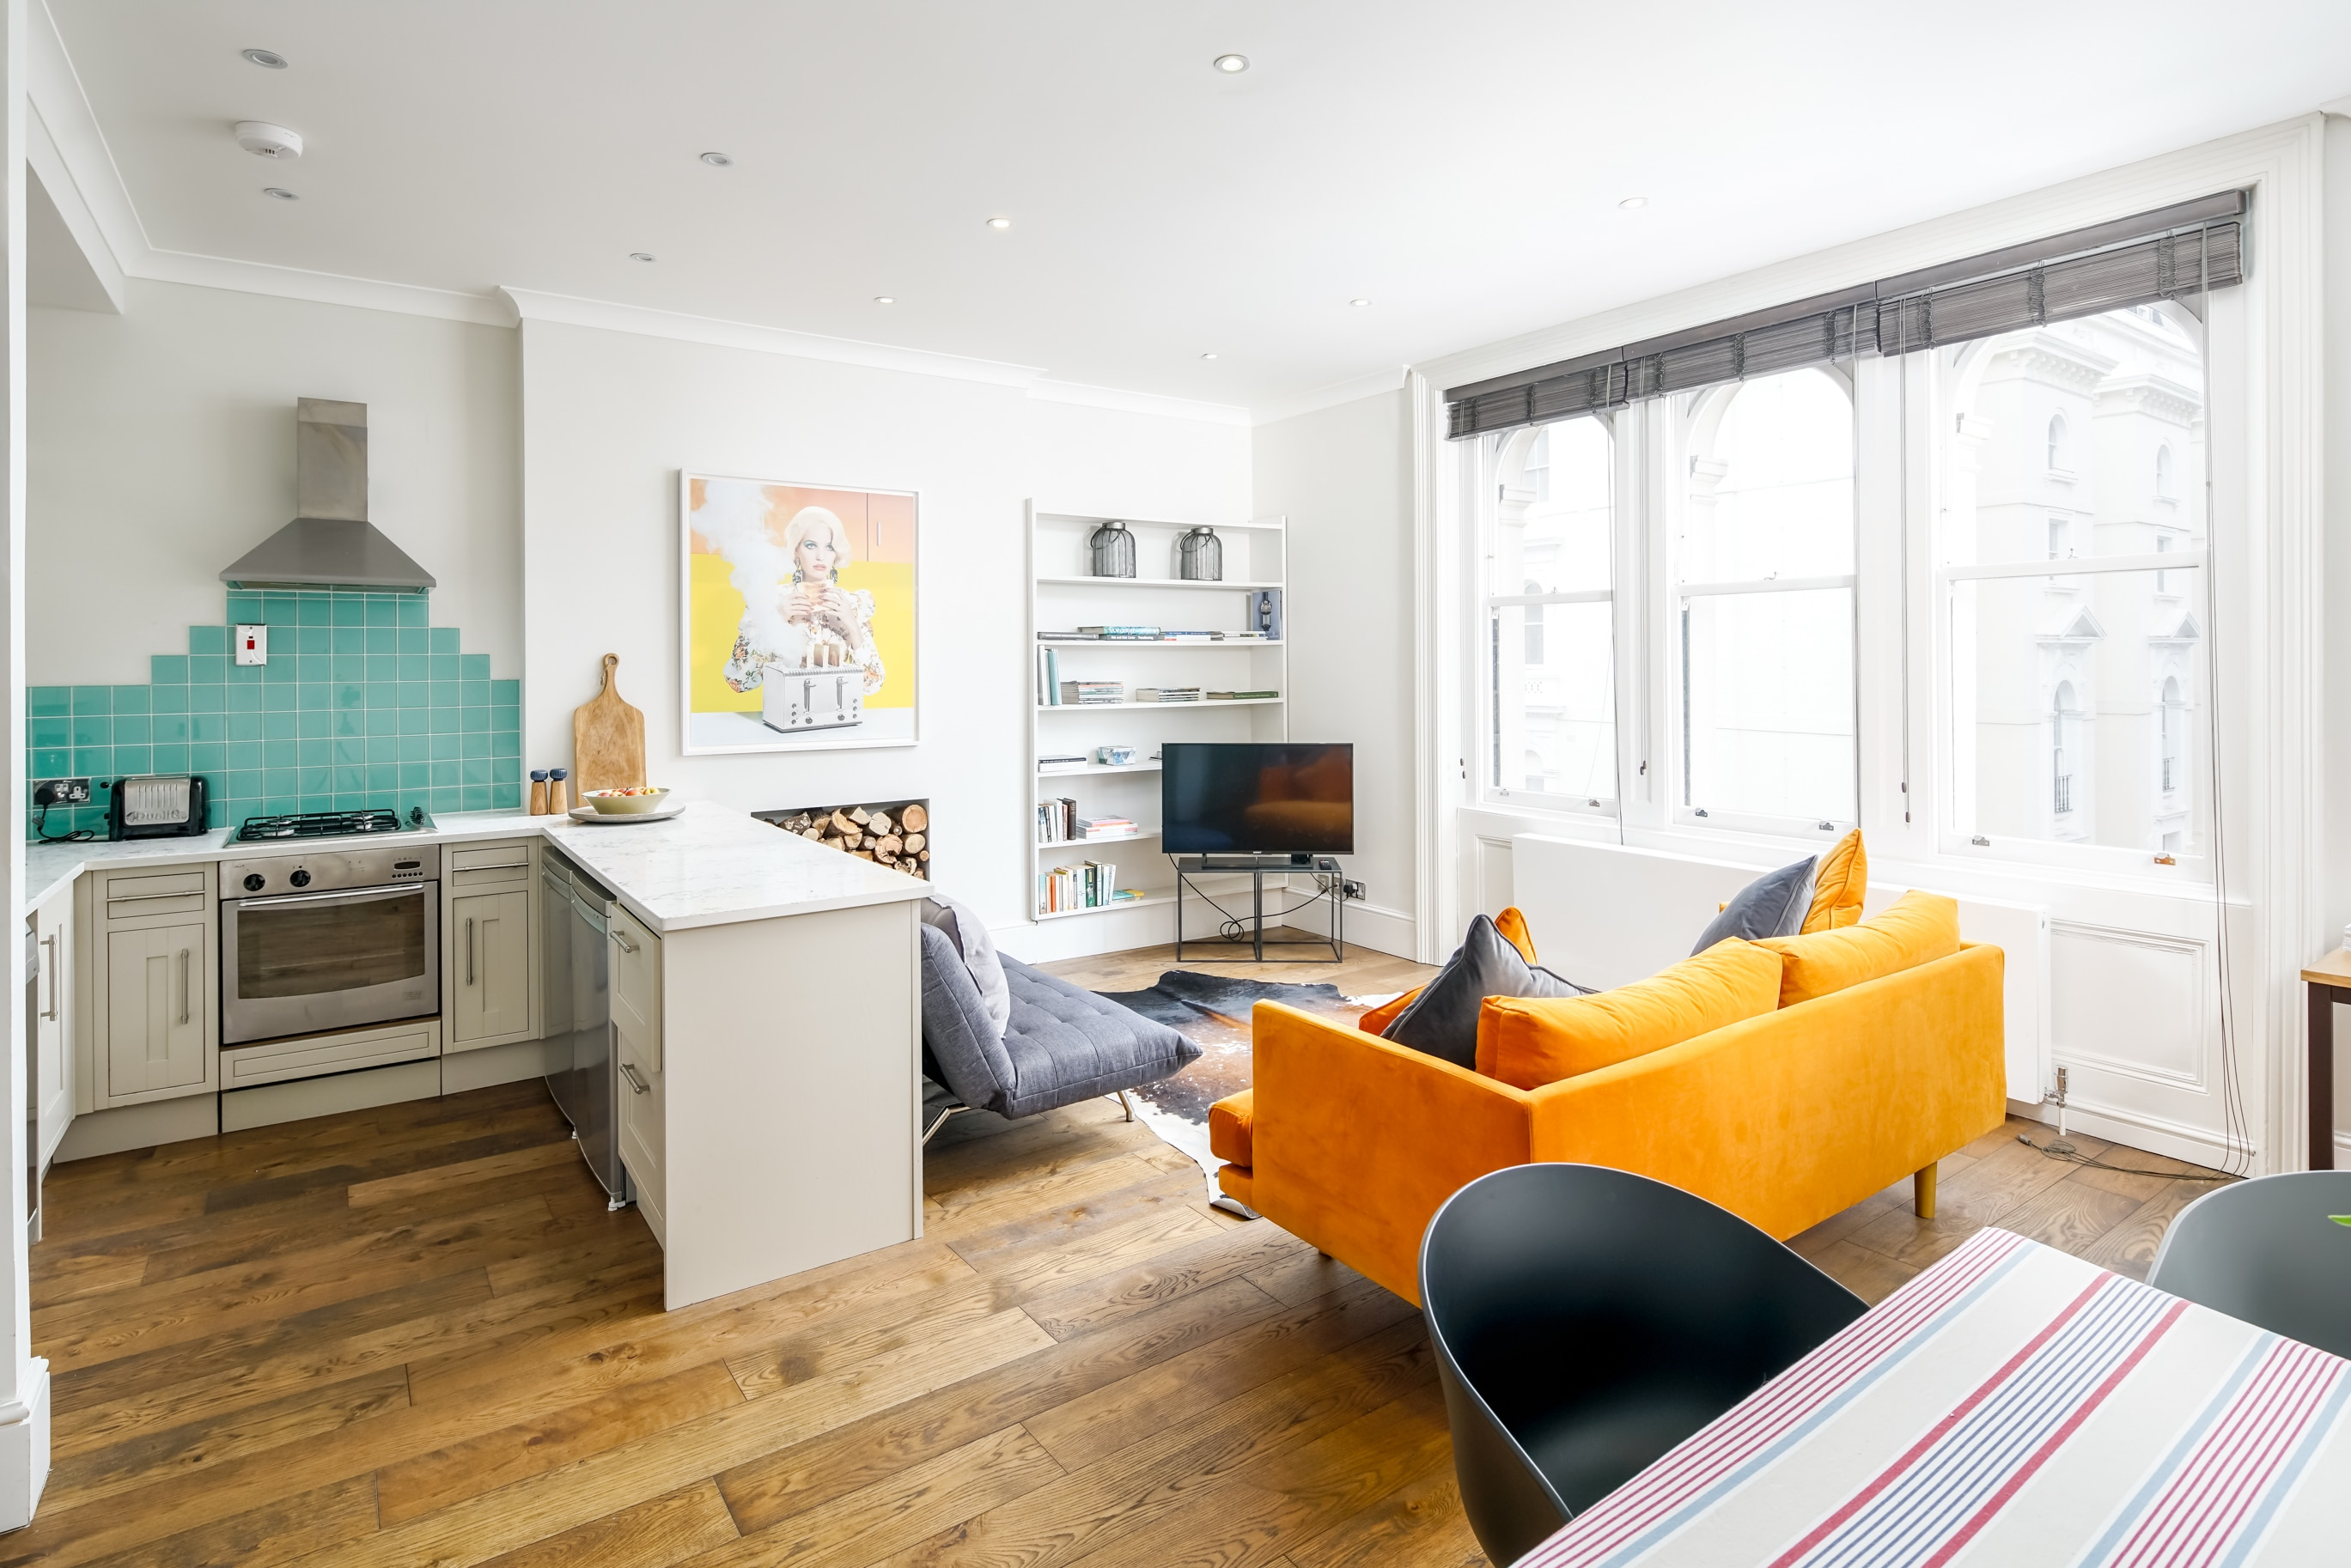 Property Image 0 - Light and Airy 1-bed in Leafy Square Near Paddington